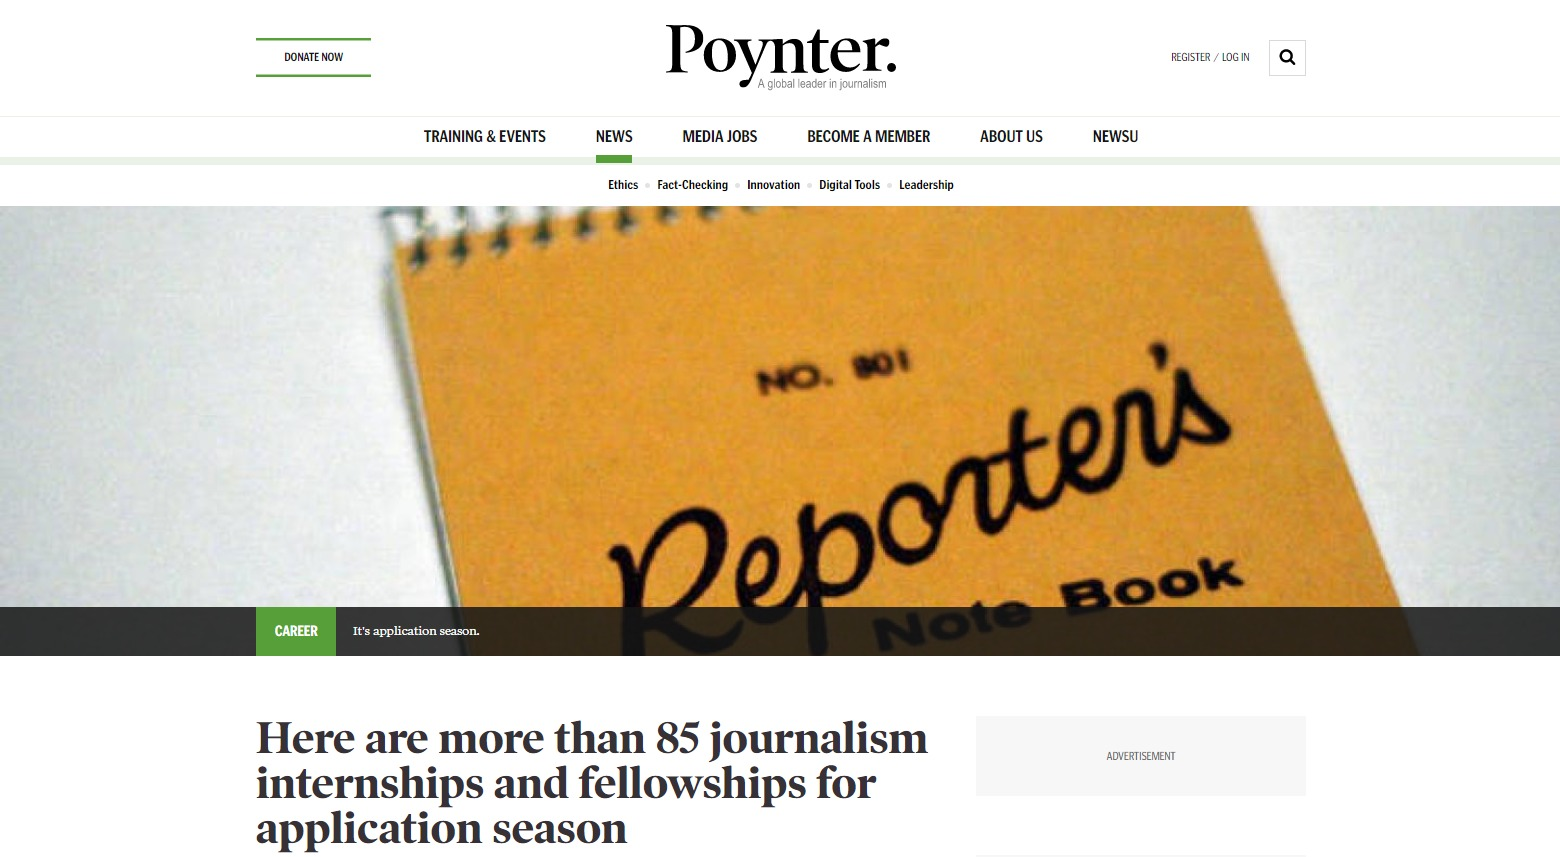 Here are more than 85 journalism internships and fellowships for application season Poynter